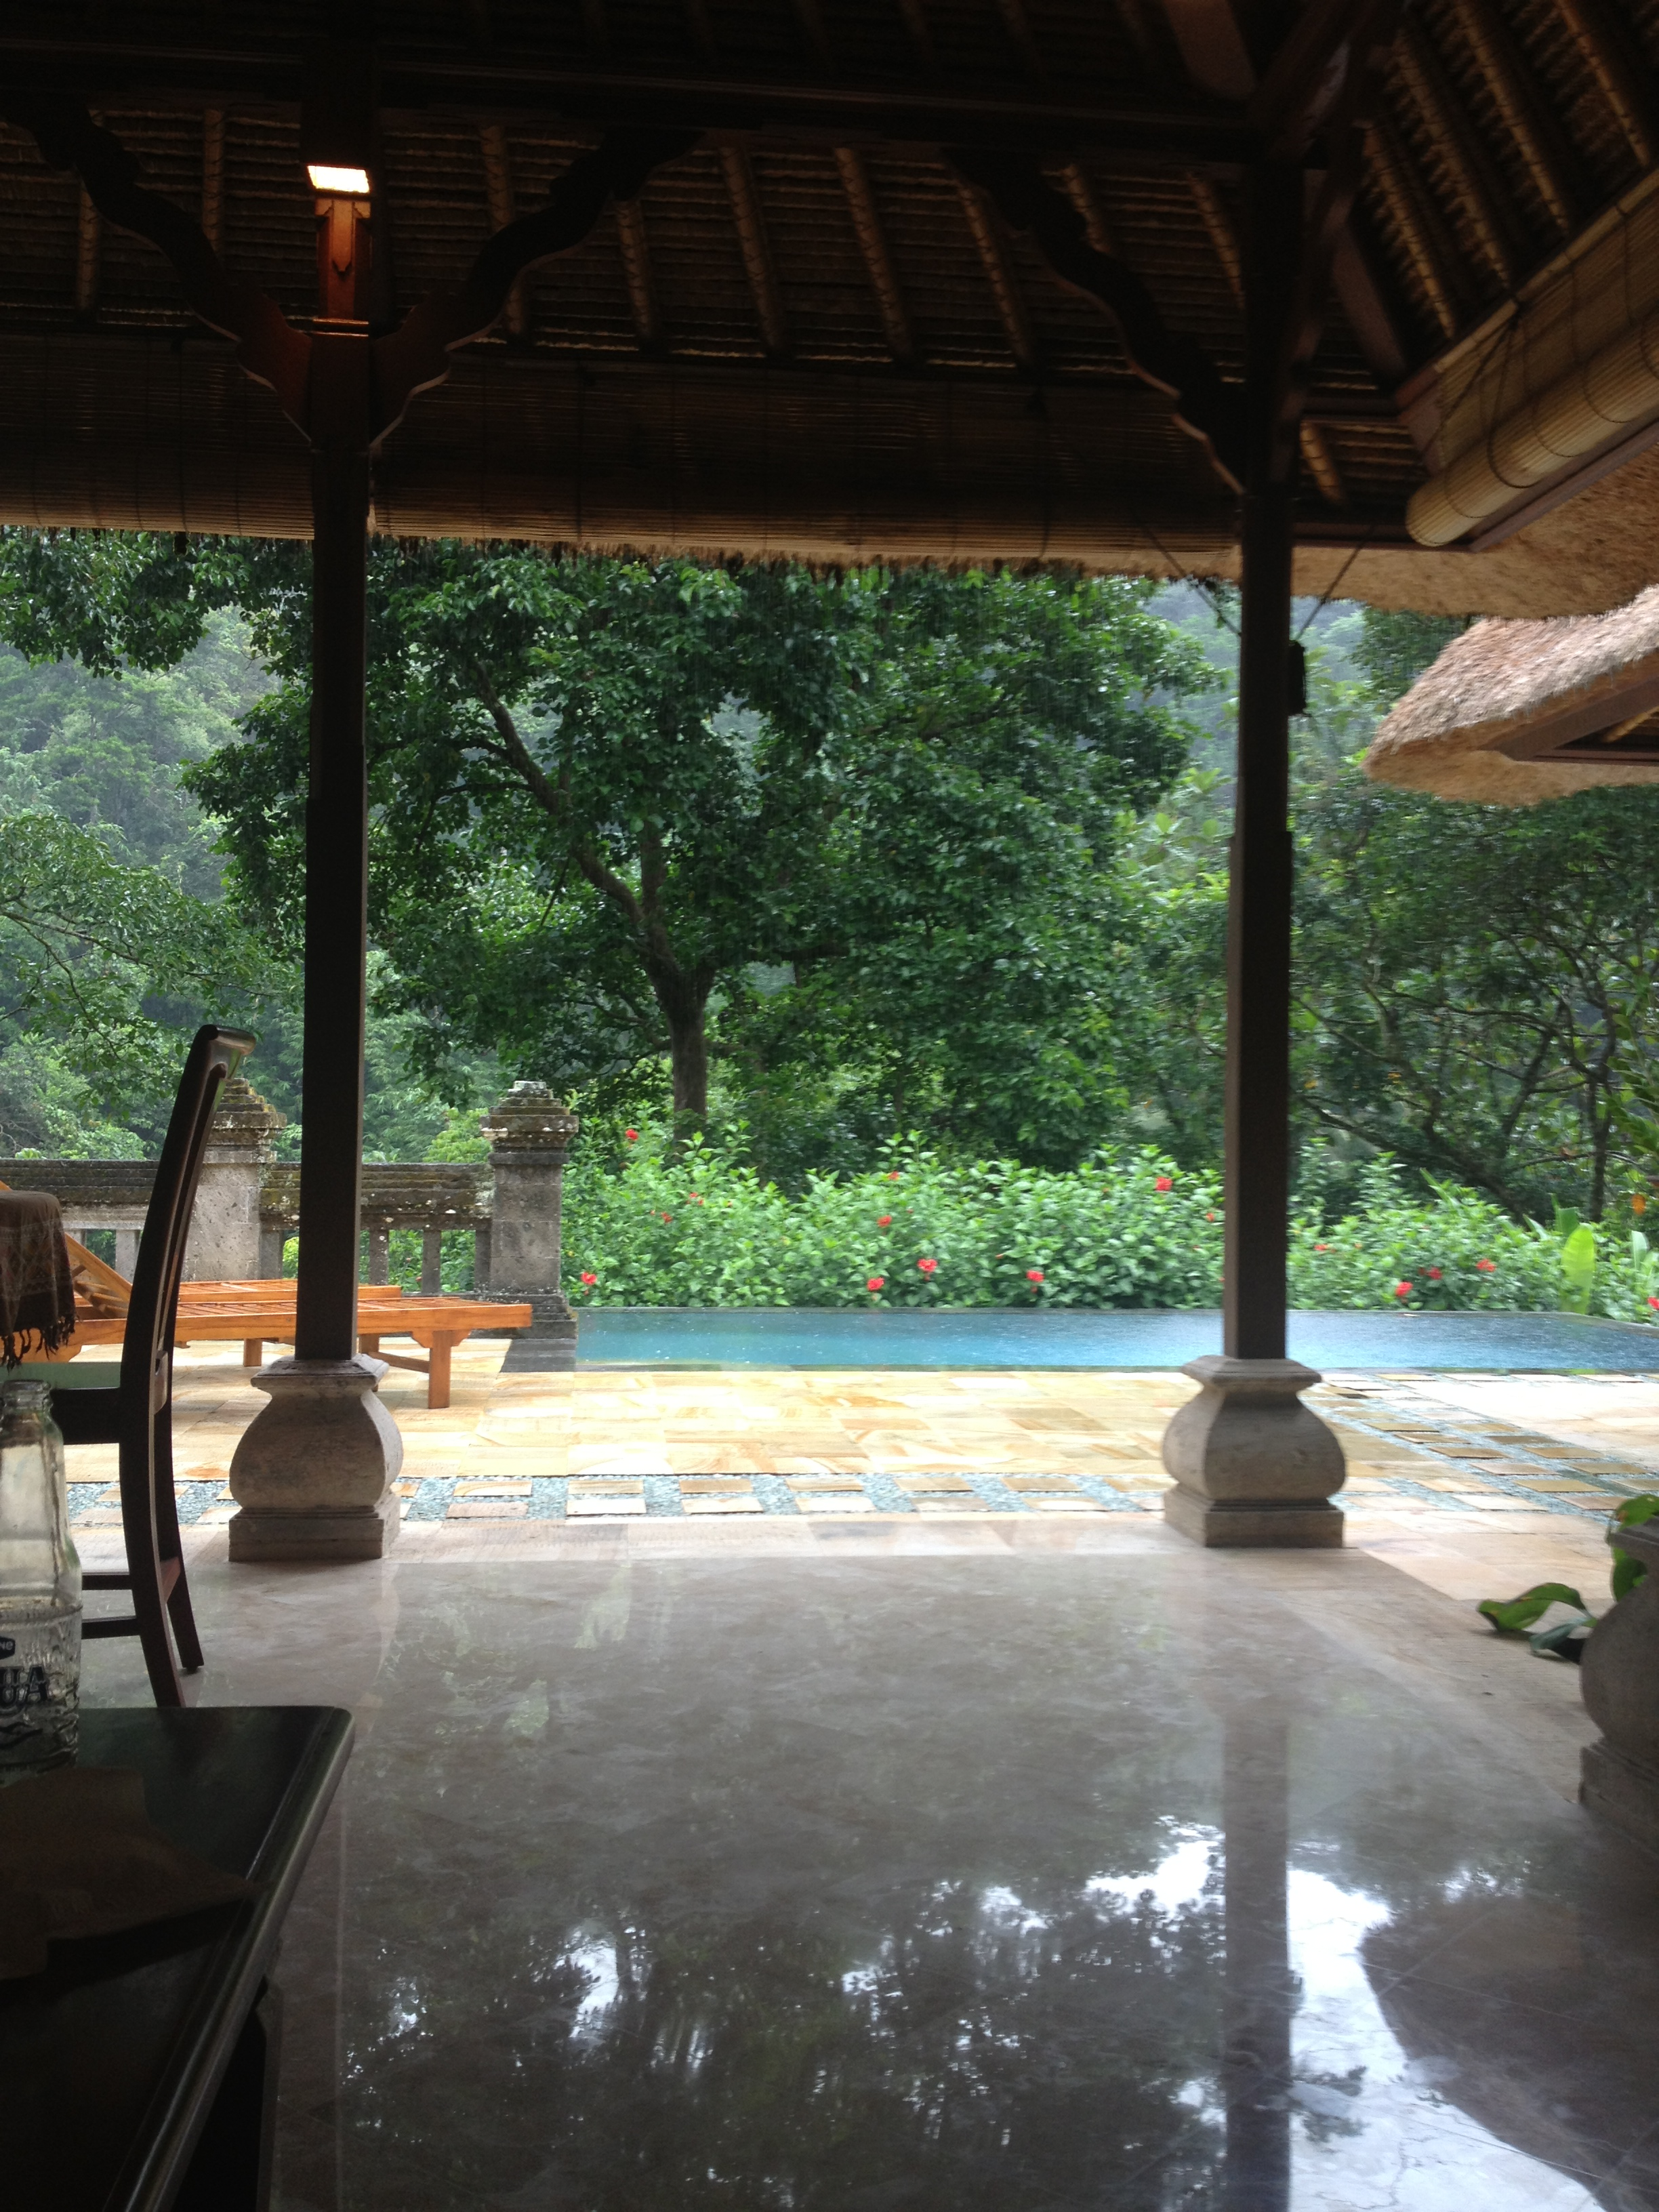 Our villa at Puri Wulundari during the afternoon rain.